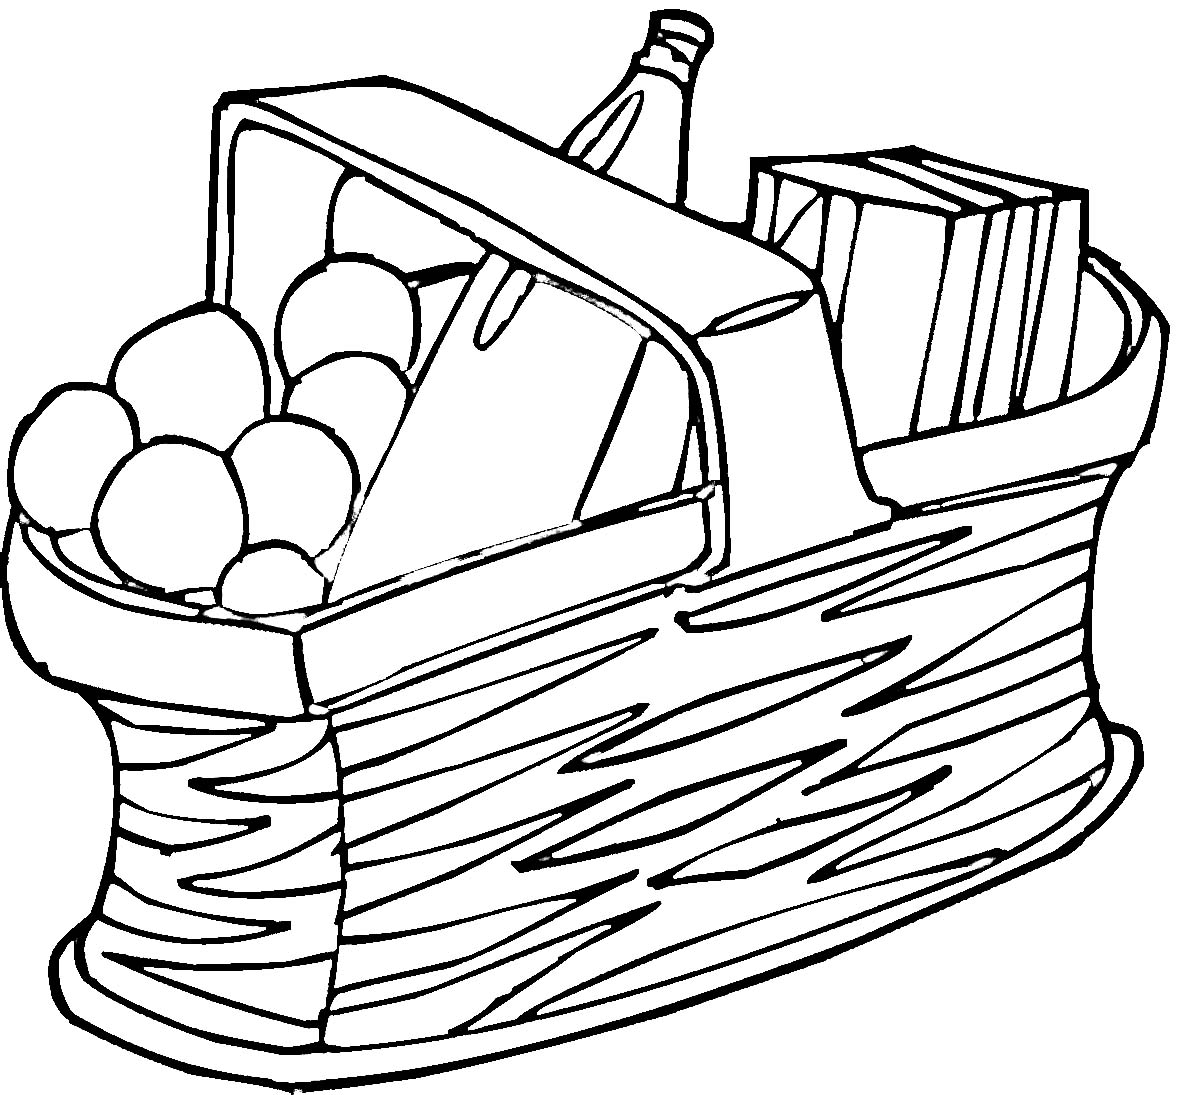 1200x1095 Picnic Basket Clipart Black And White Clipartfest 2